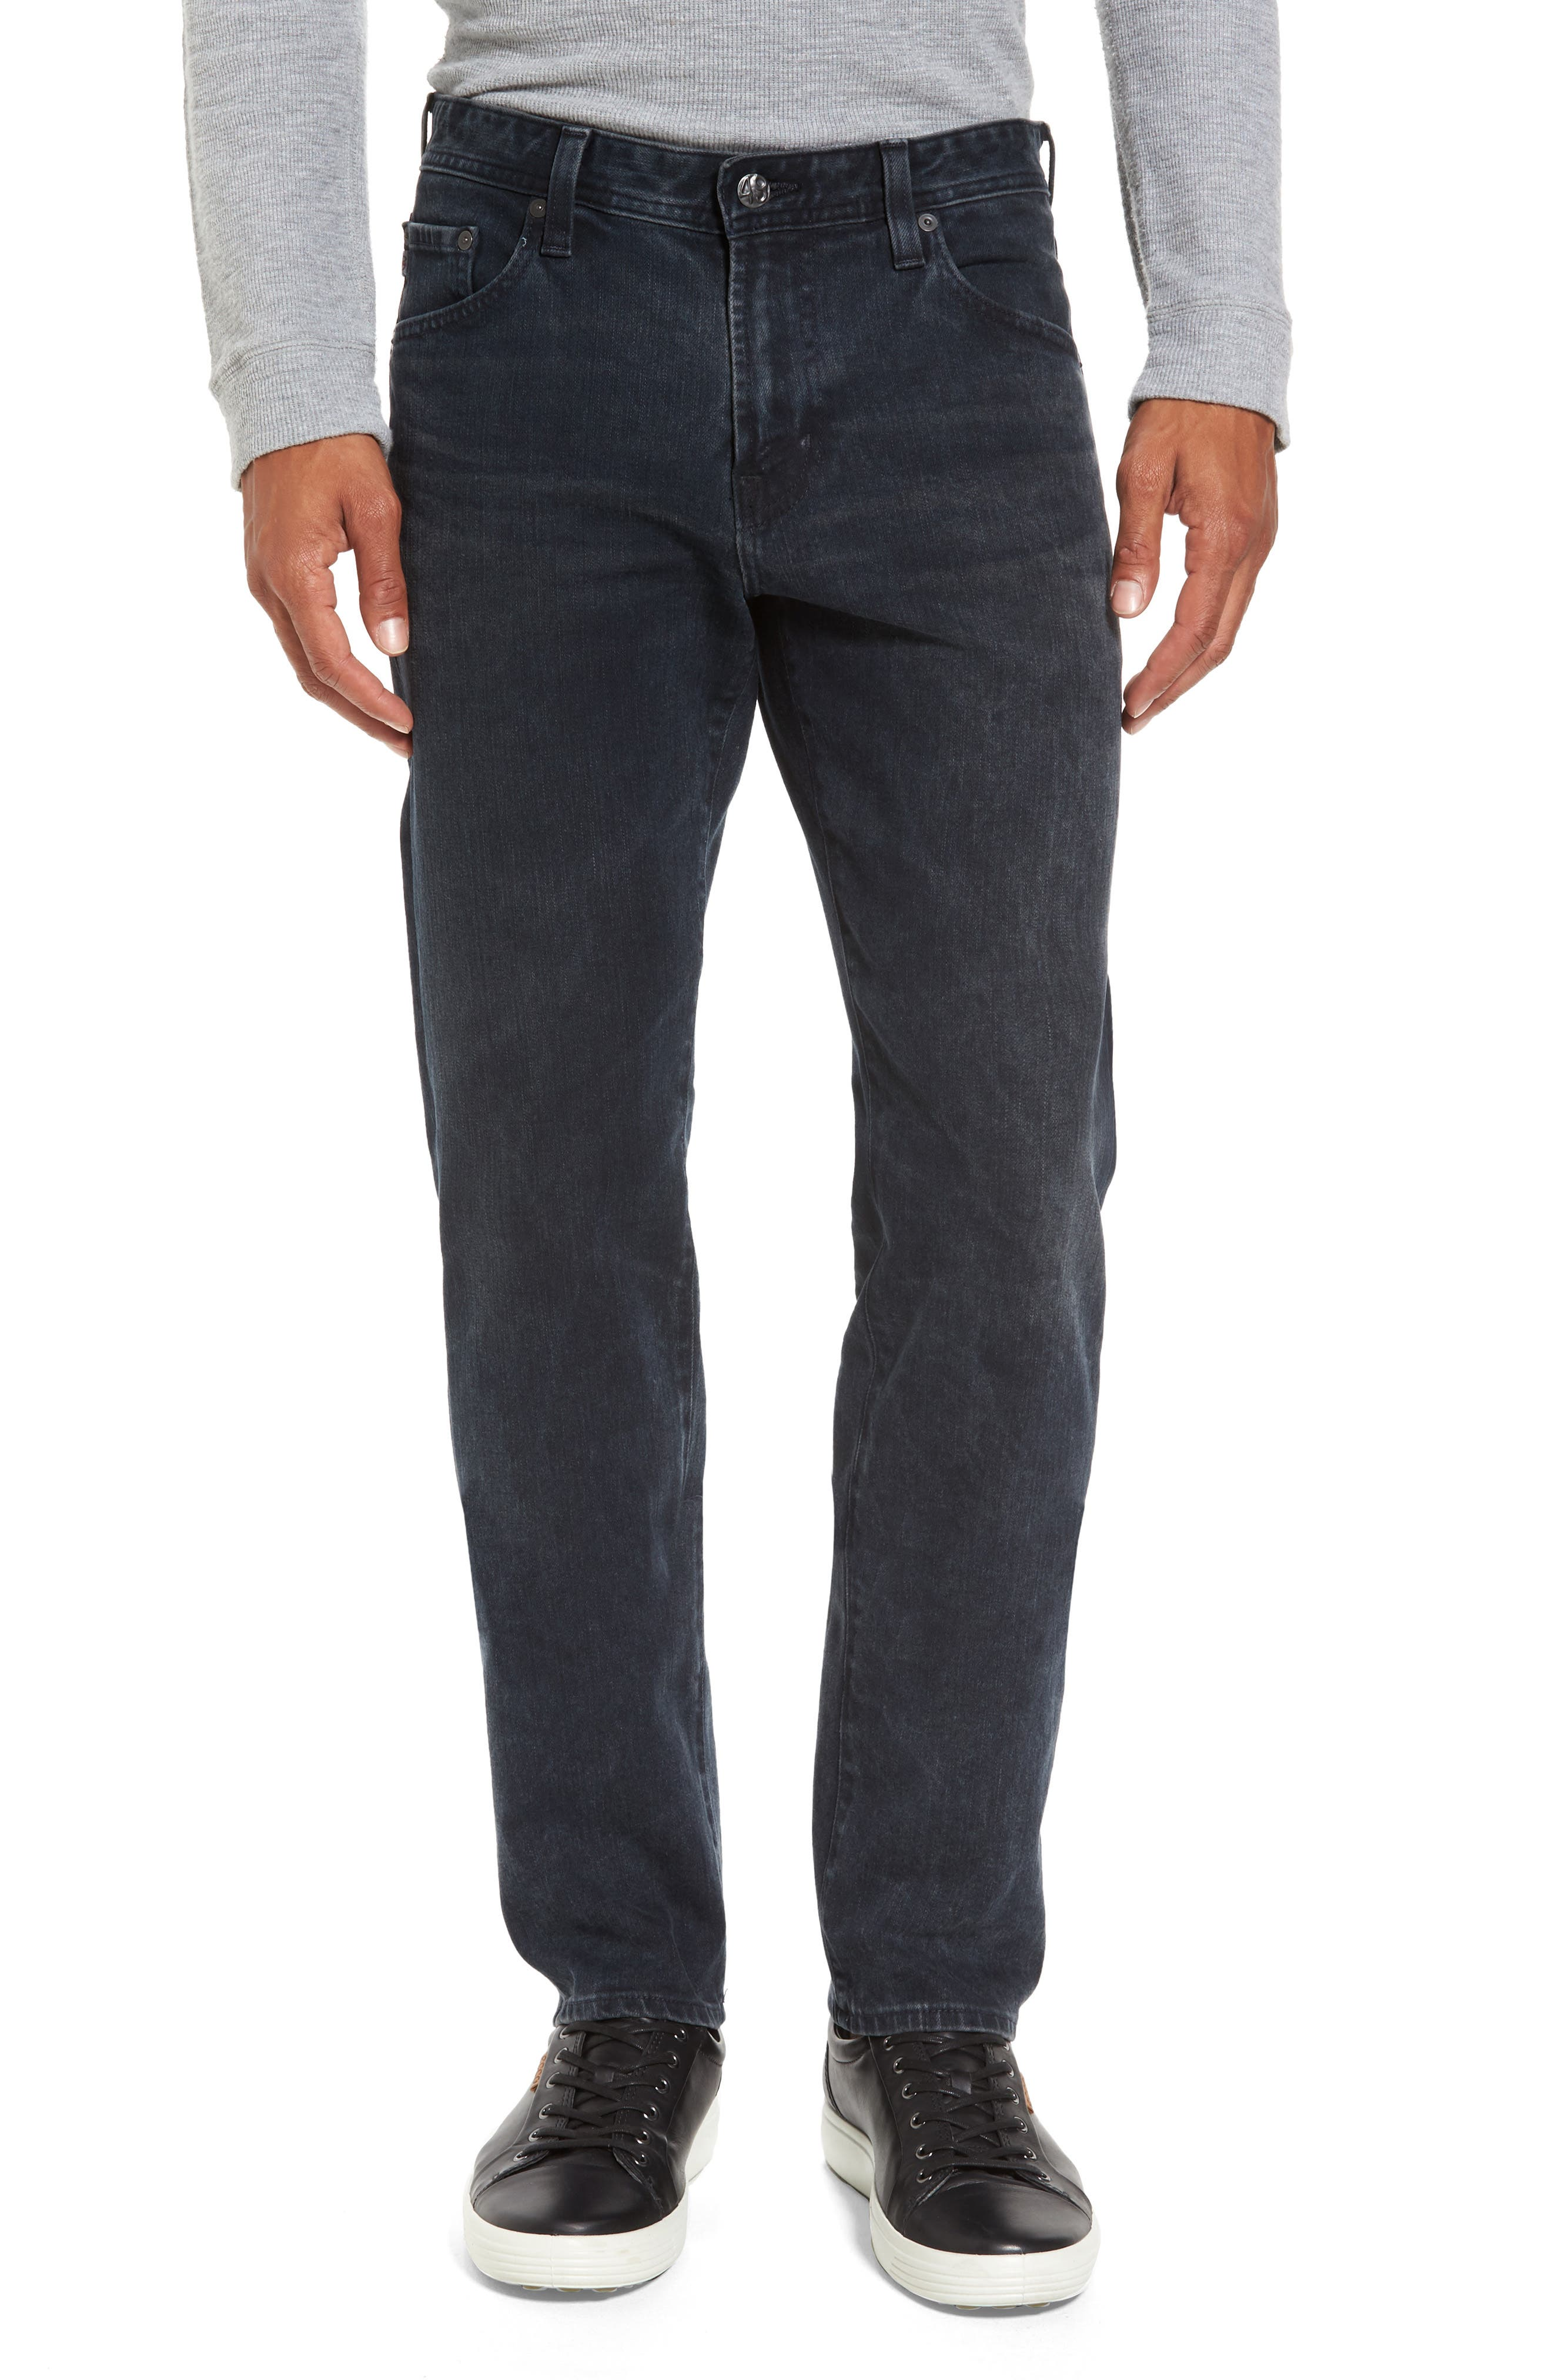 Graduate Slim Straight Leg Jeans,                         Main,                         color, 419